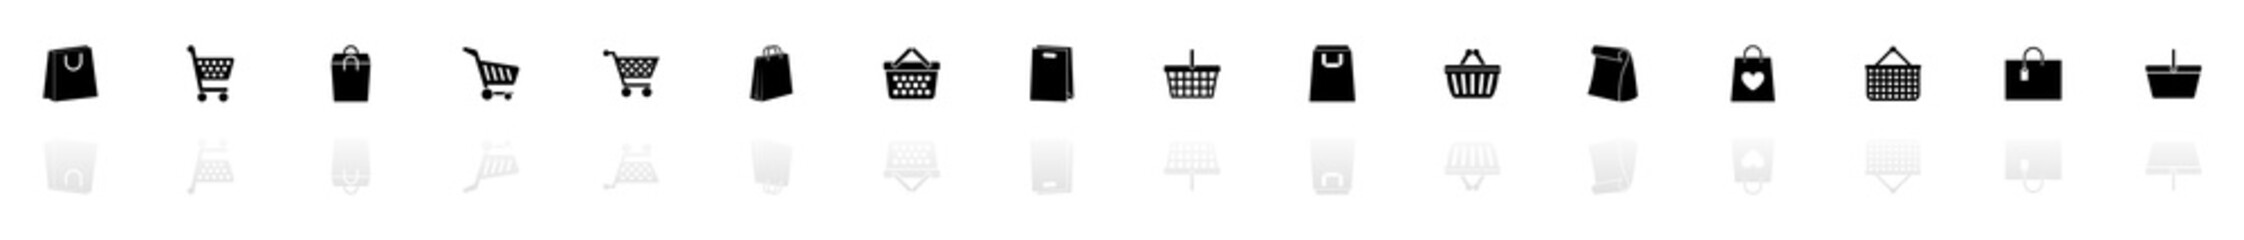 Shopping Bags icons - Black horizontal Illustration symbol on White Background with a mirror Shadow reflection. Flat Vector Icon.